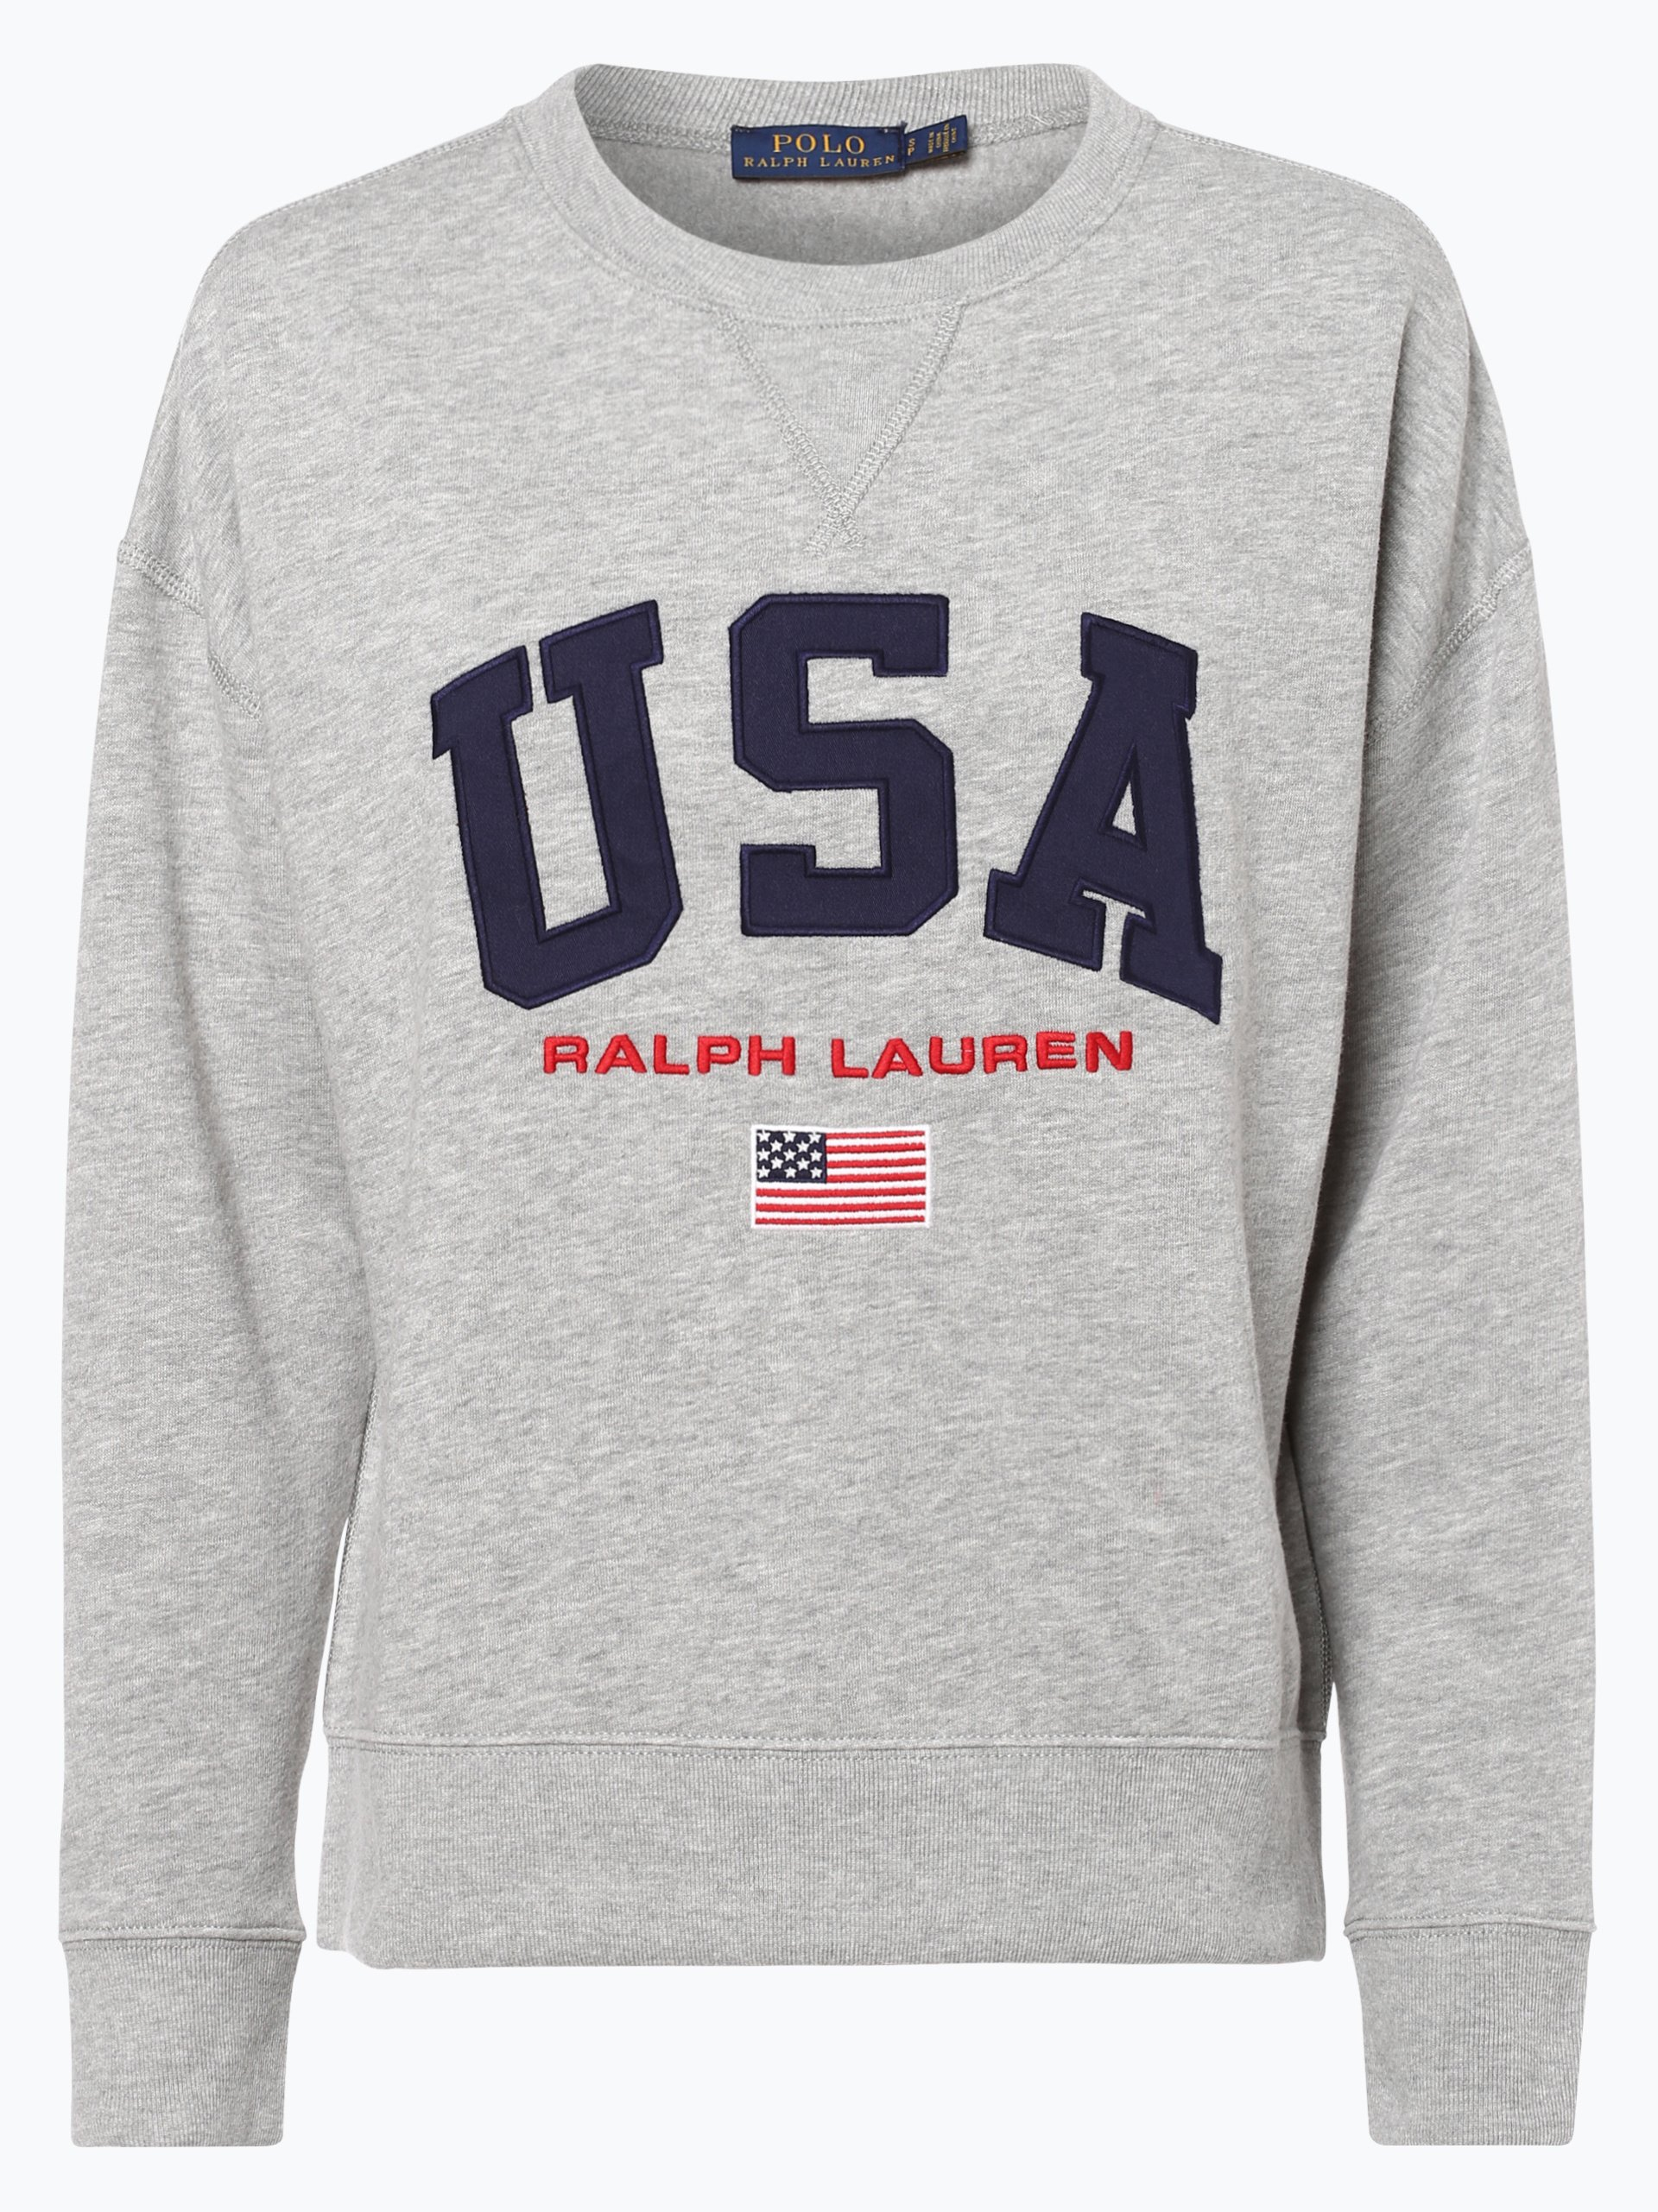 polo ralph lauren damen sweatshirt online kaufen. Black Bedroom Furniture Sets. Home Design Ideas